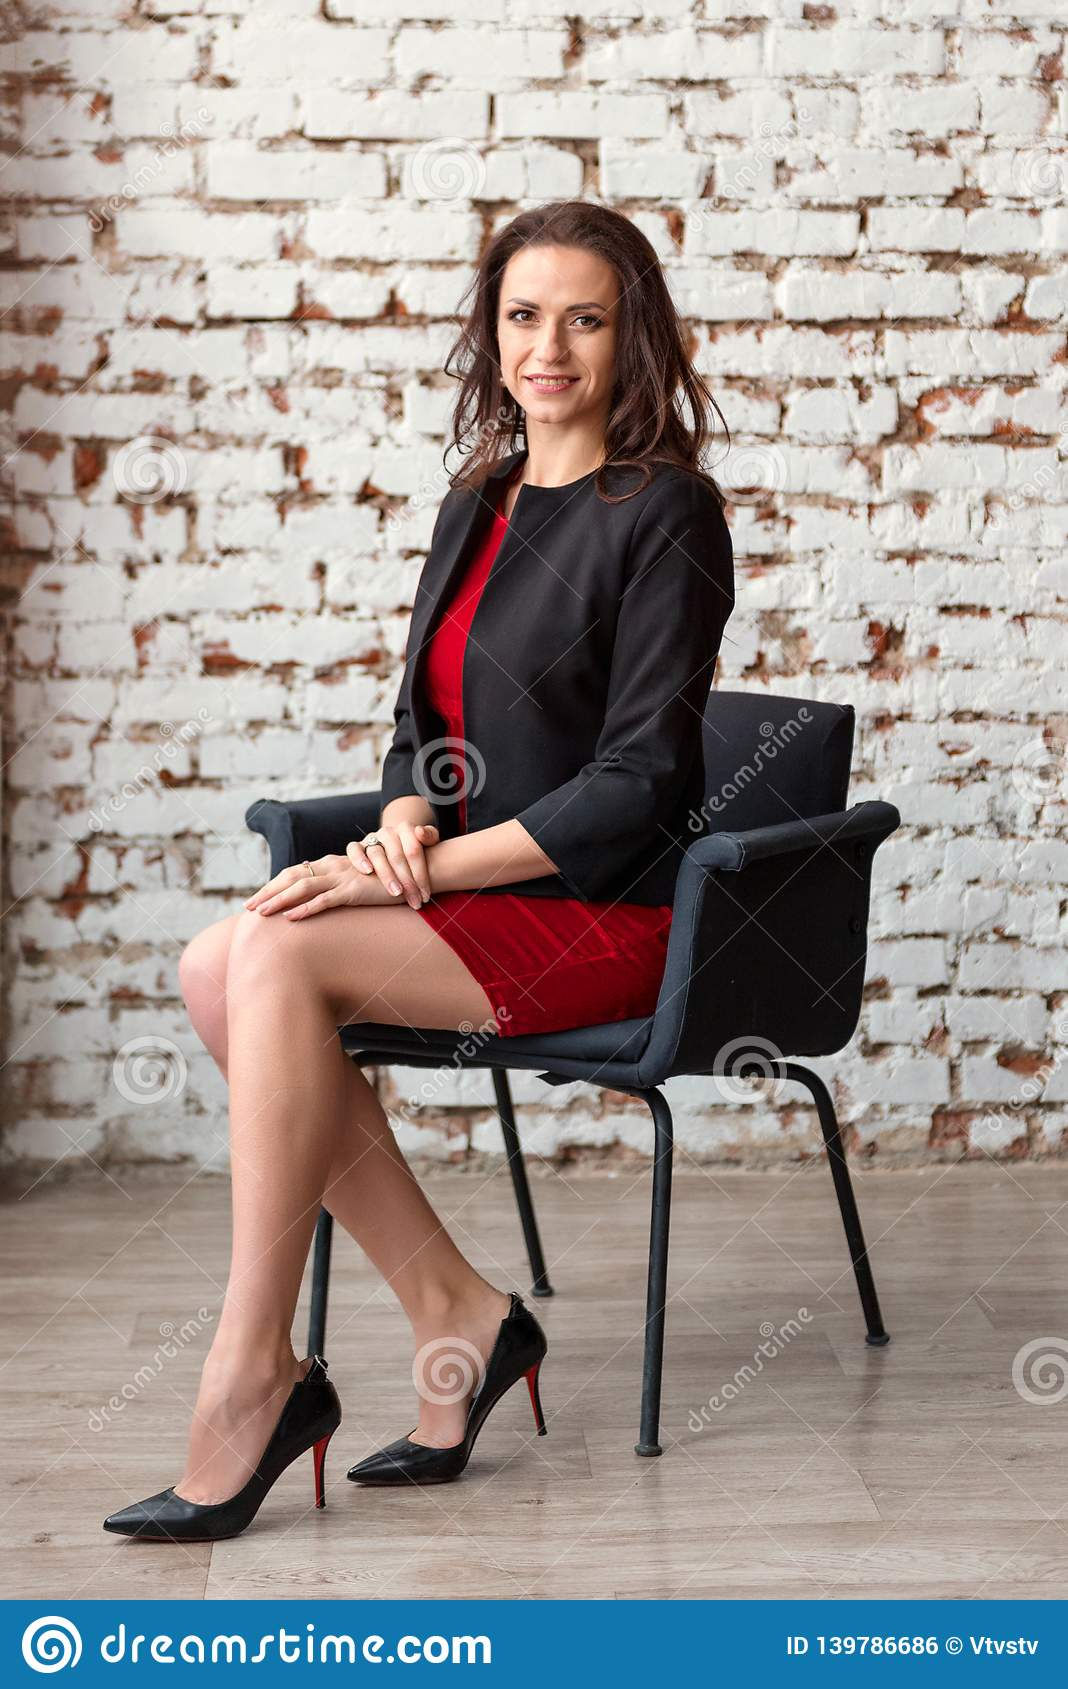 A young attractive business woman brunette in a short red dress and black jacket sitting on a chair with a white wall on the